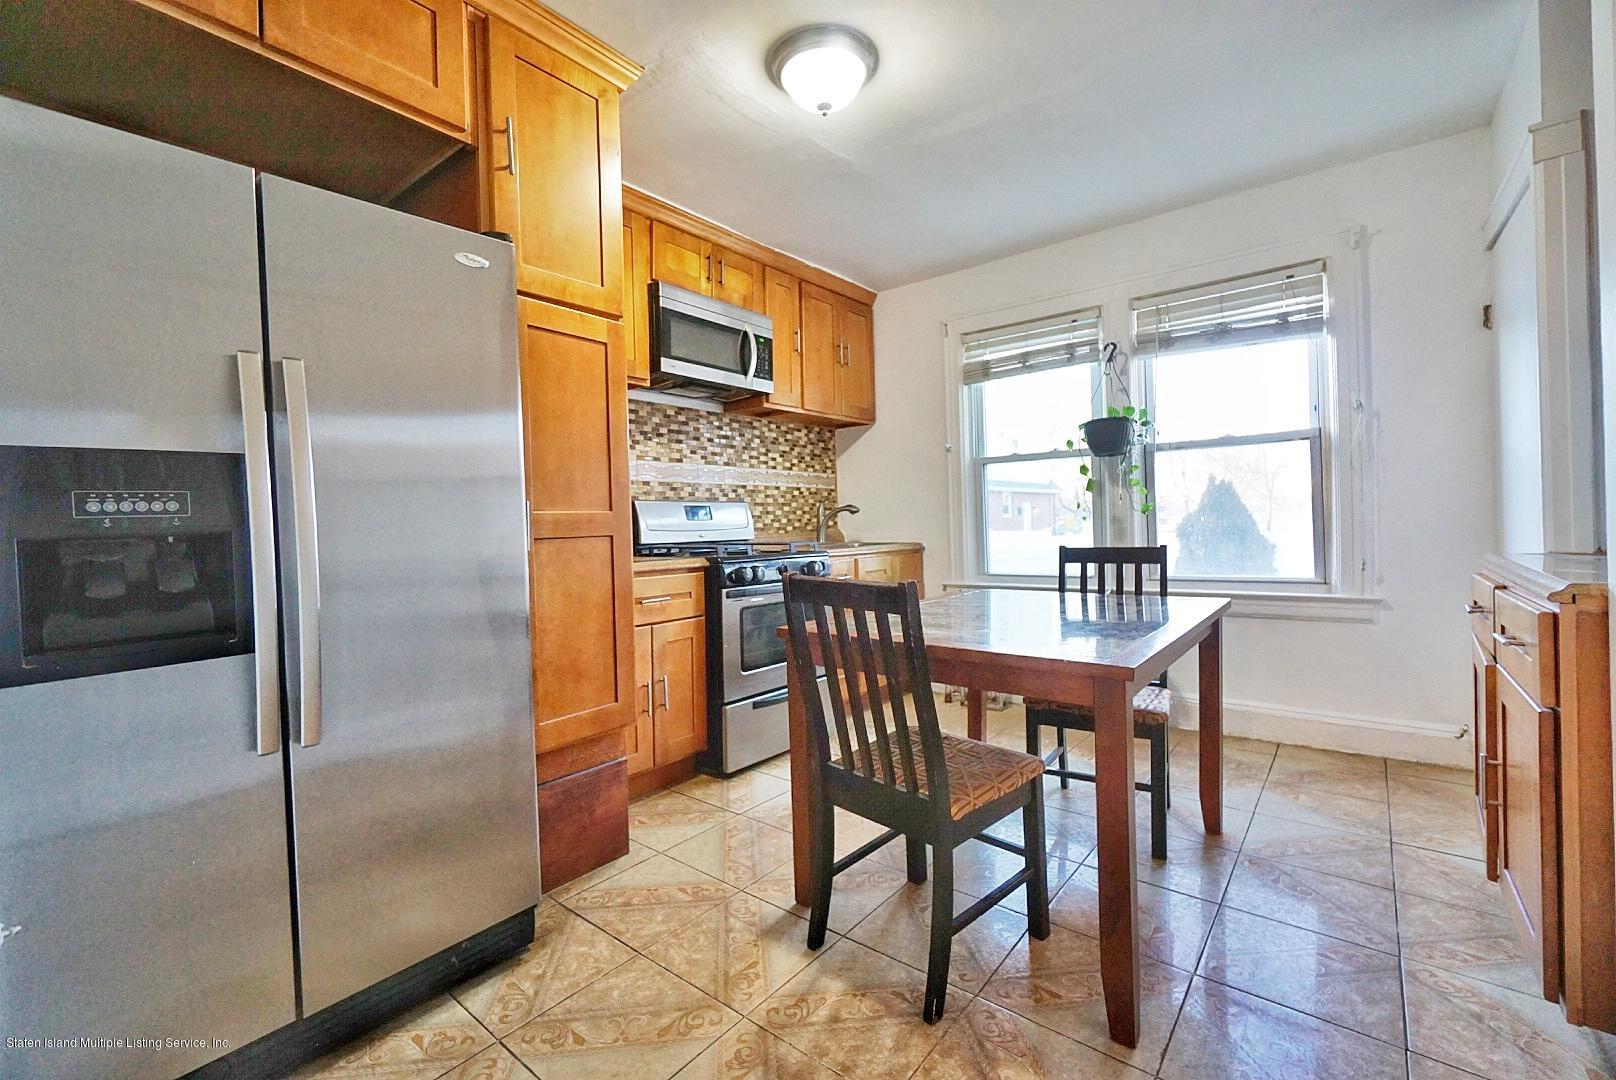 Two Family - Detached 151-33 134th Avenue   Queens, NY 11434, MLS-1125850-8